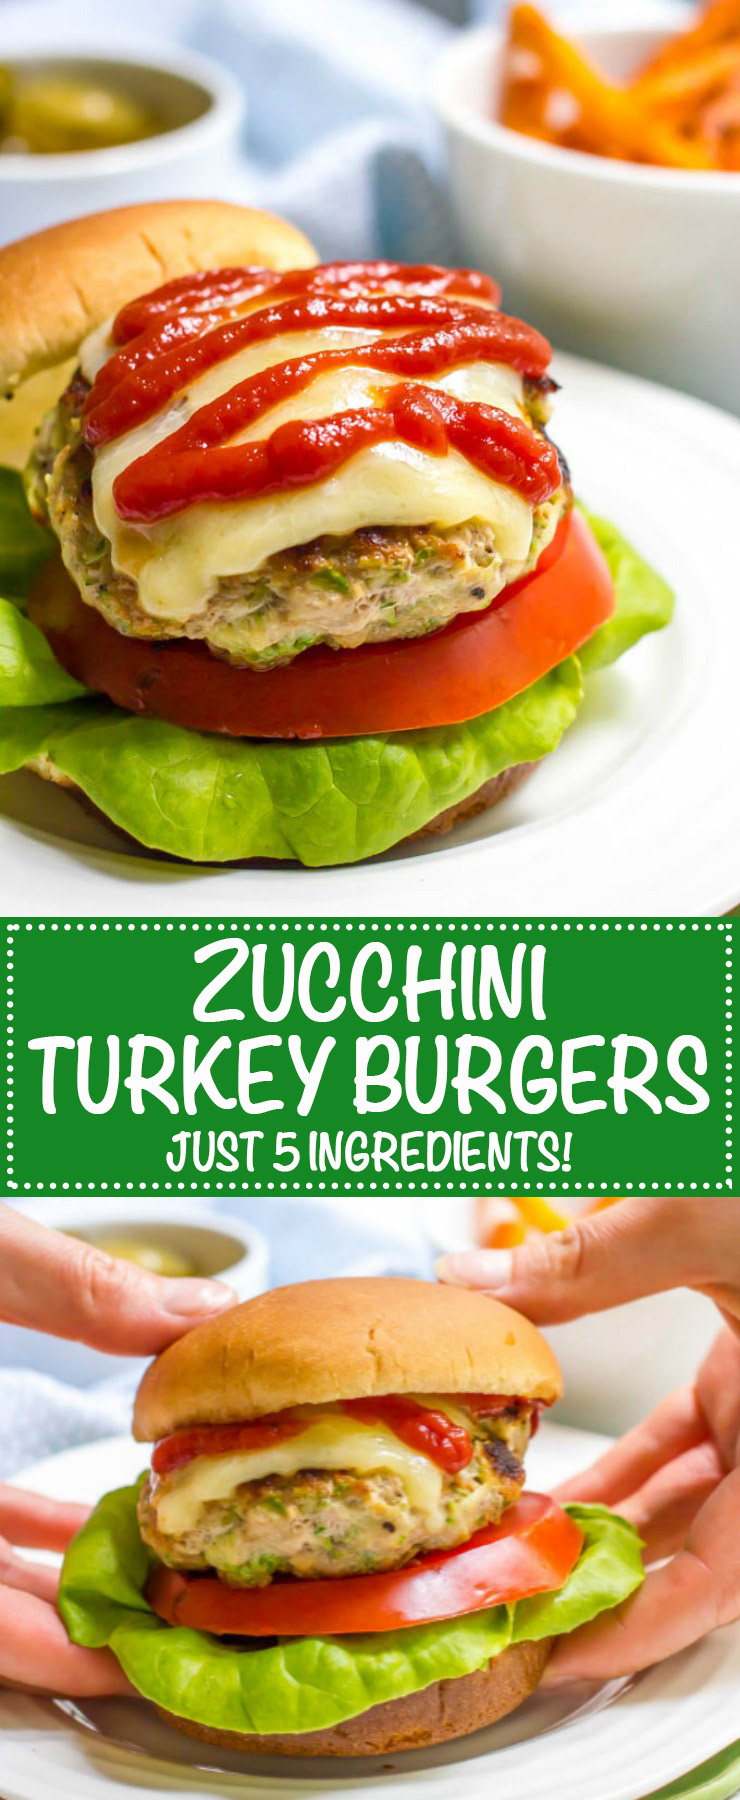 Zucchini turkey burgers are just 5 basic ingredients and come out so juicy and flavorful - perfect for an easy dinner! | www.familyfoodonthetable